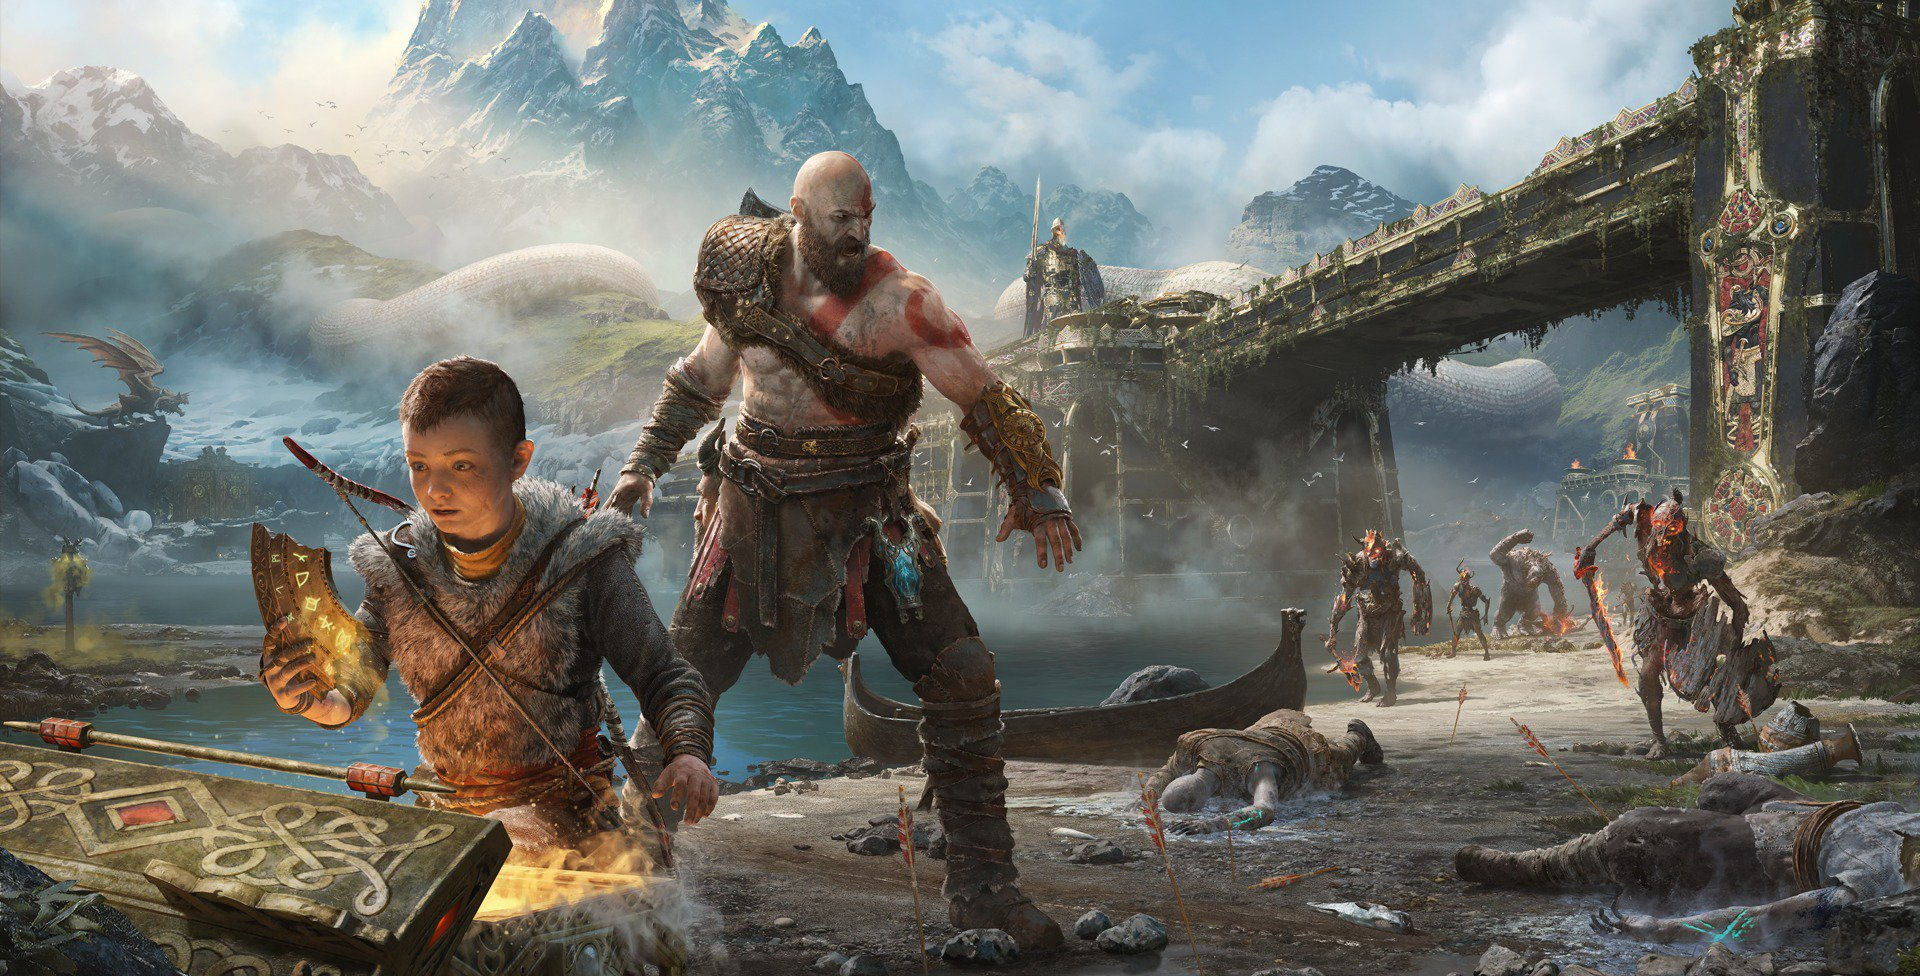 God of War Director's Hidden Twitter Message Uncovered Over